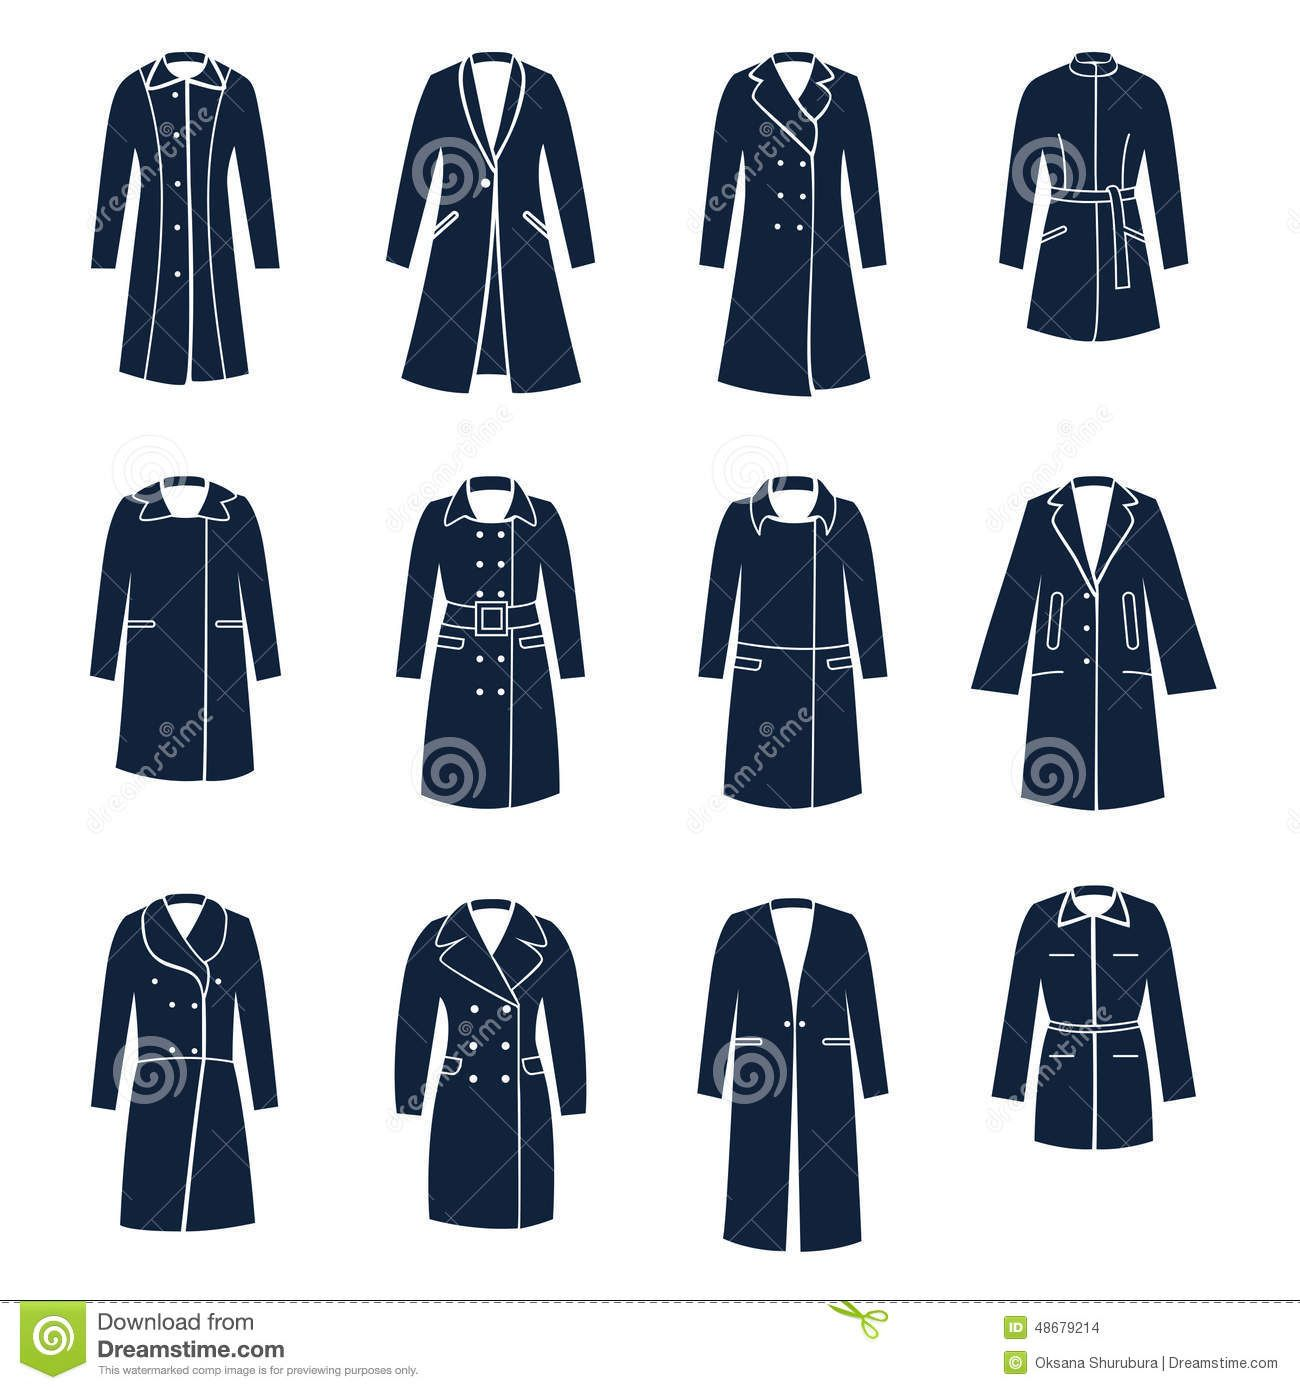 Different Types Of Women Coats Coats For Women Fashion Inspiration Design Types Of Coats